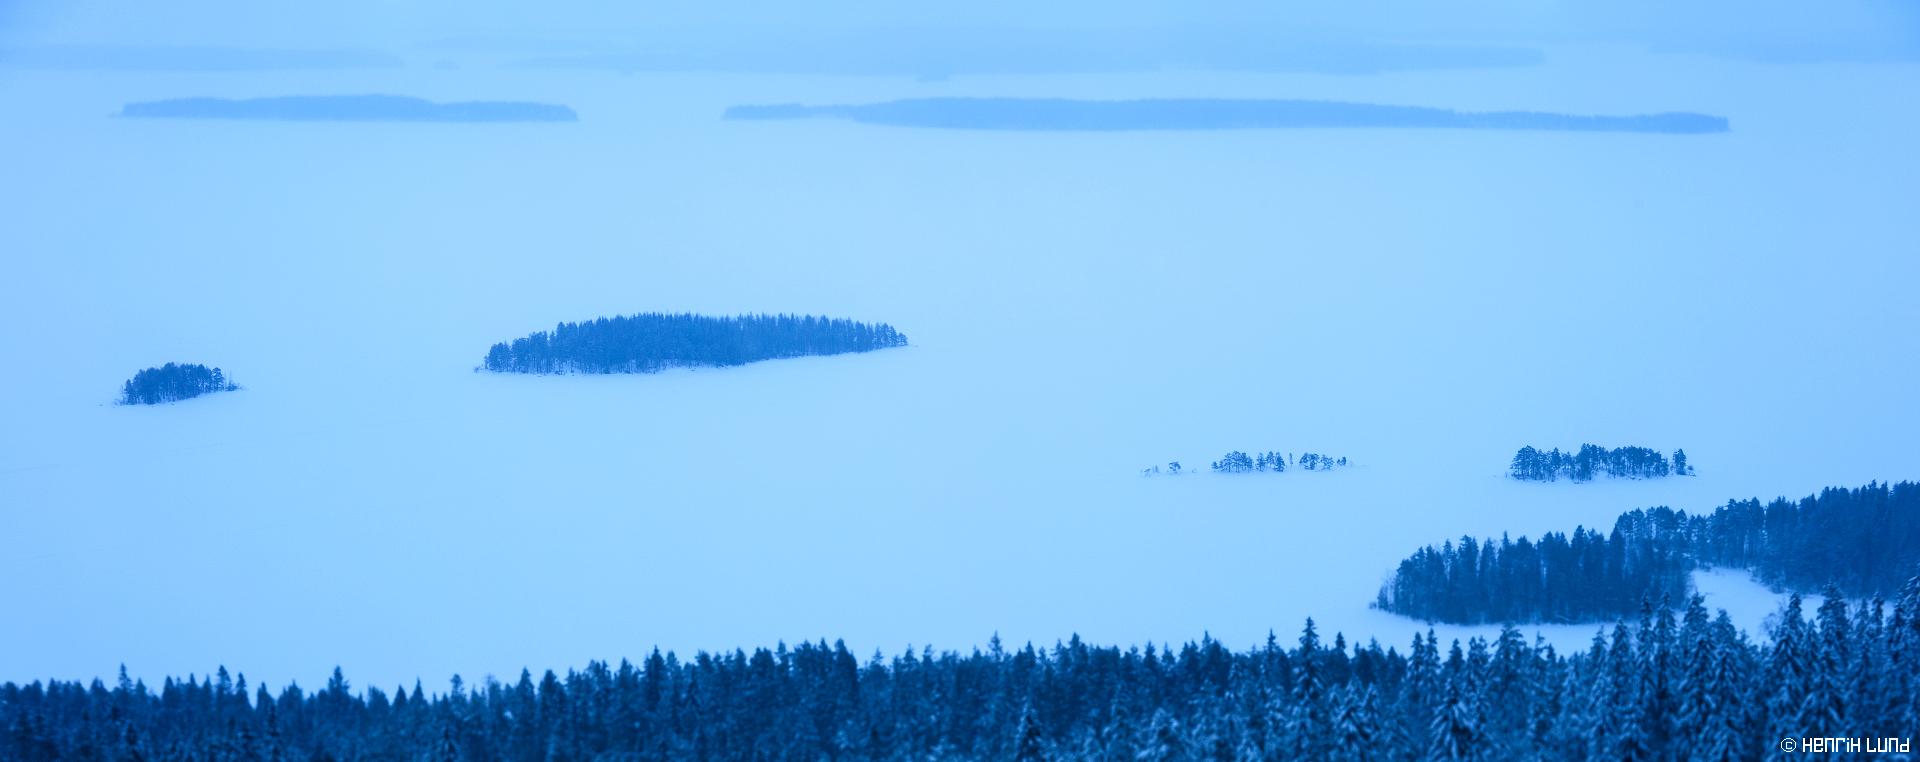 Panoramic view over Pielinen from Koli, Lieksa, Finland. February 2016.